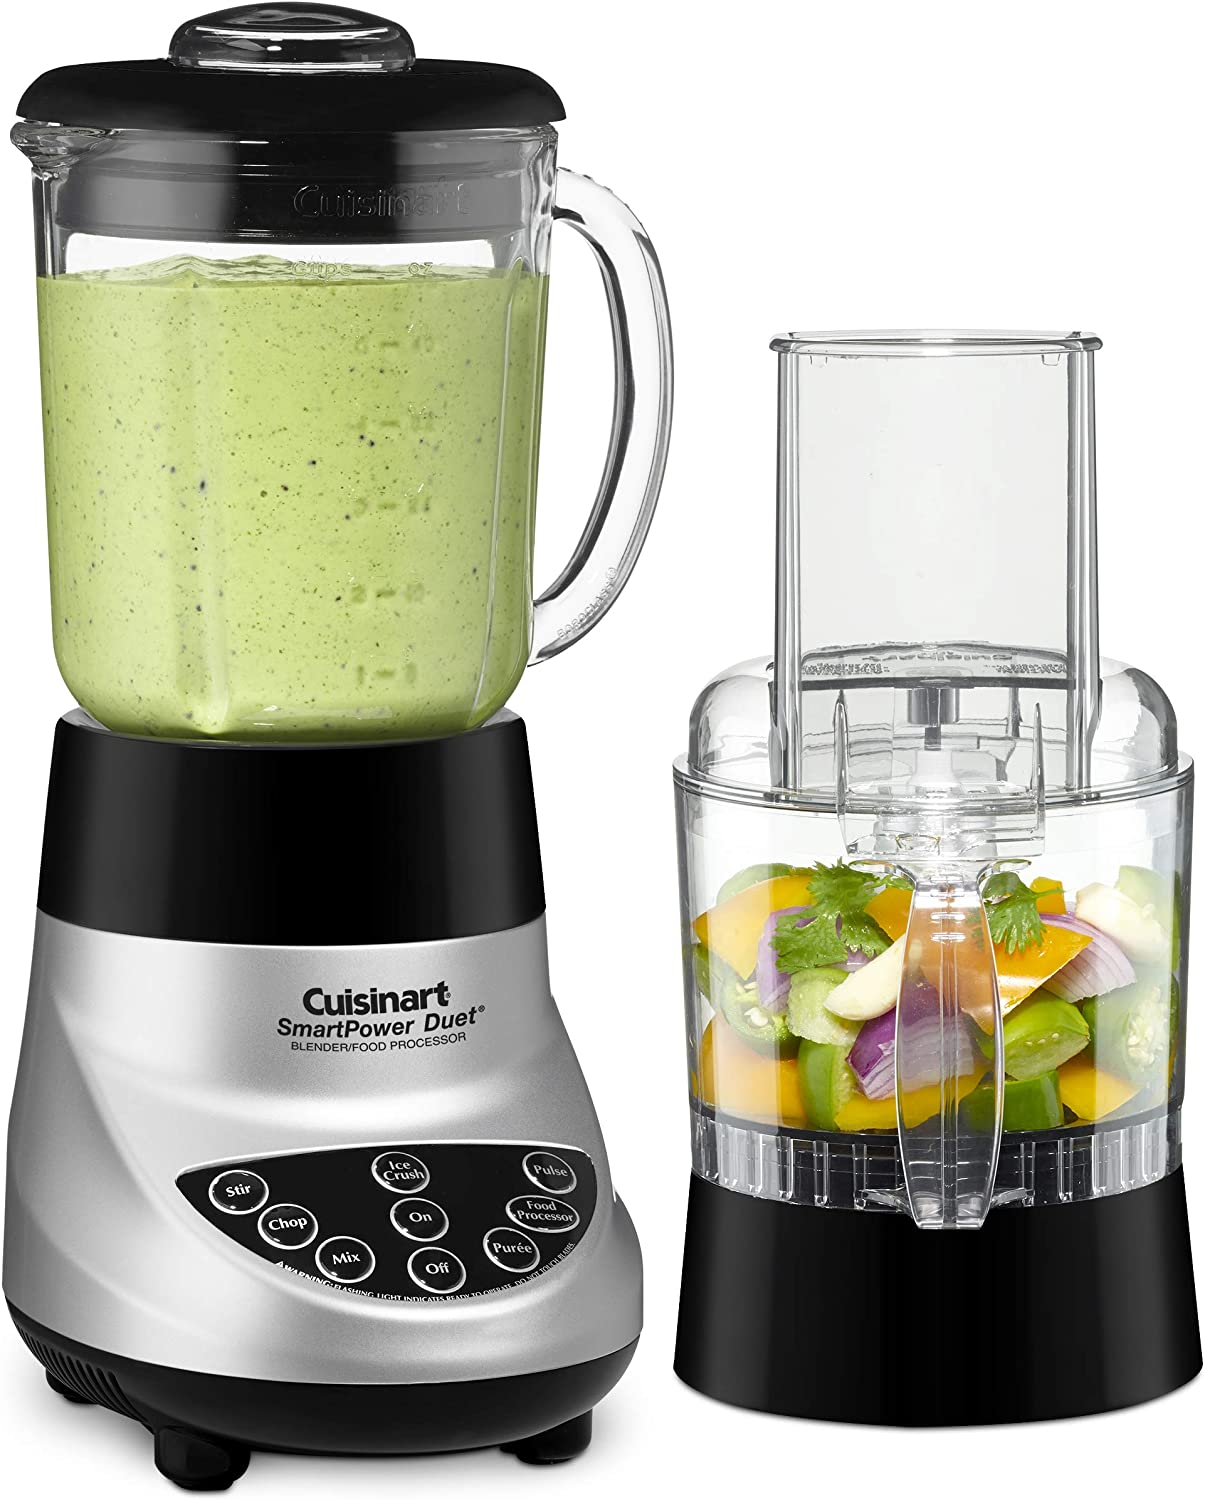 Cuisinart BFP-703BC Smart Power Duet Blender/Food Processor, Brushed Chrome